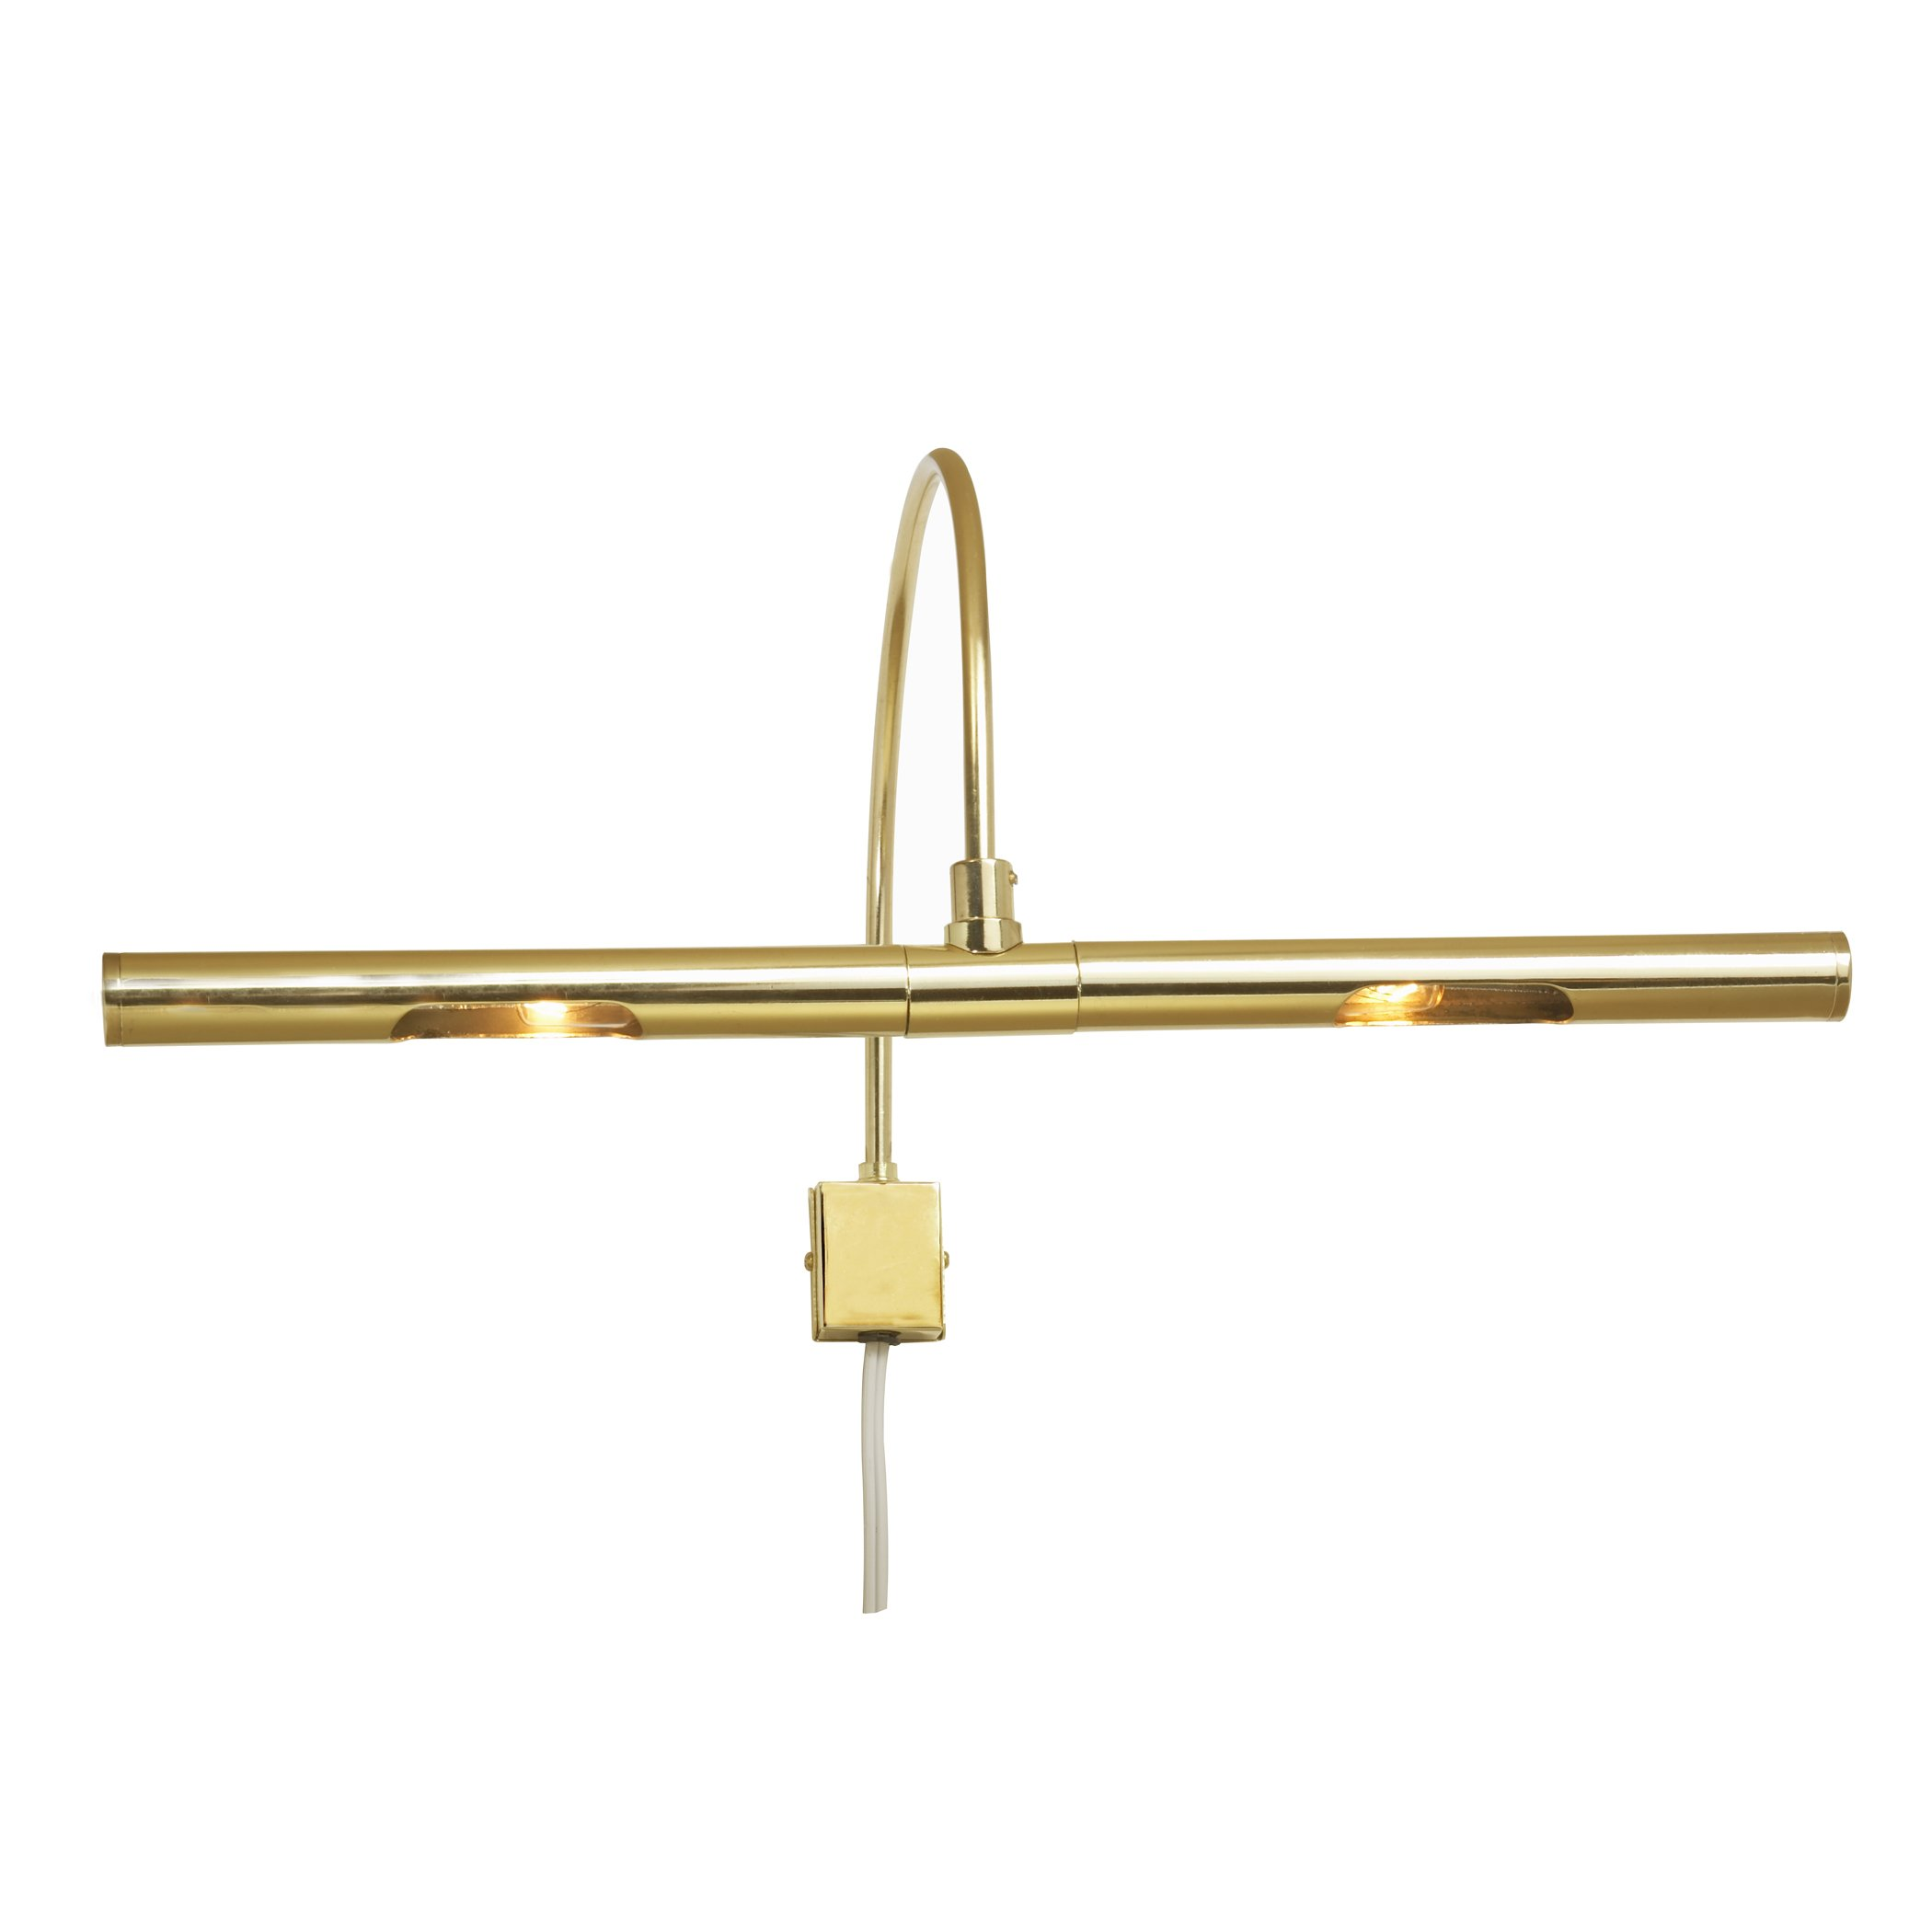 Amertac PC16RL Plug-in 30W Incandescent Picture Light, 16-Inch, Brass